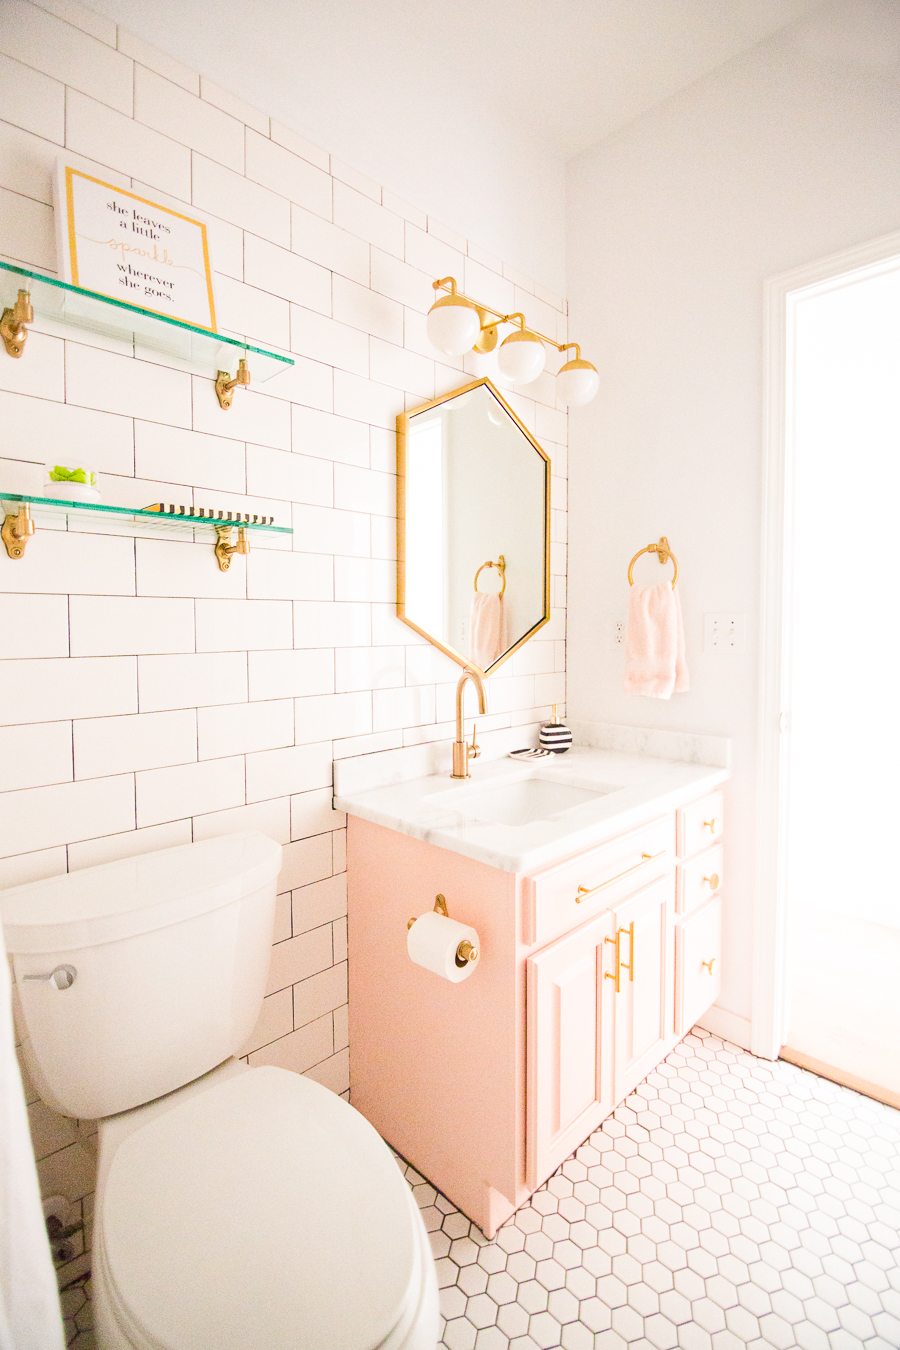 25 Jan Modern Glam Blush S Bathroom Design